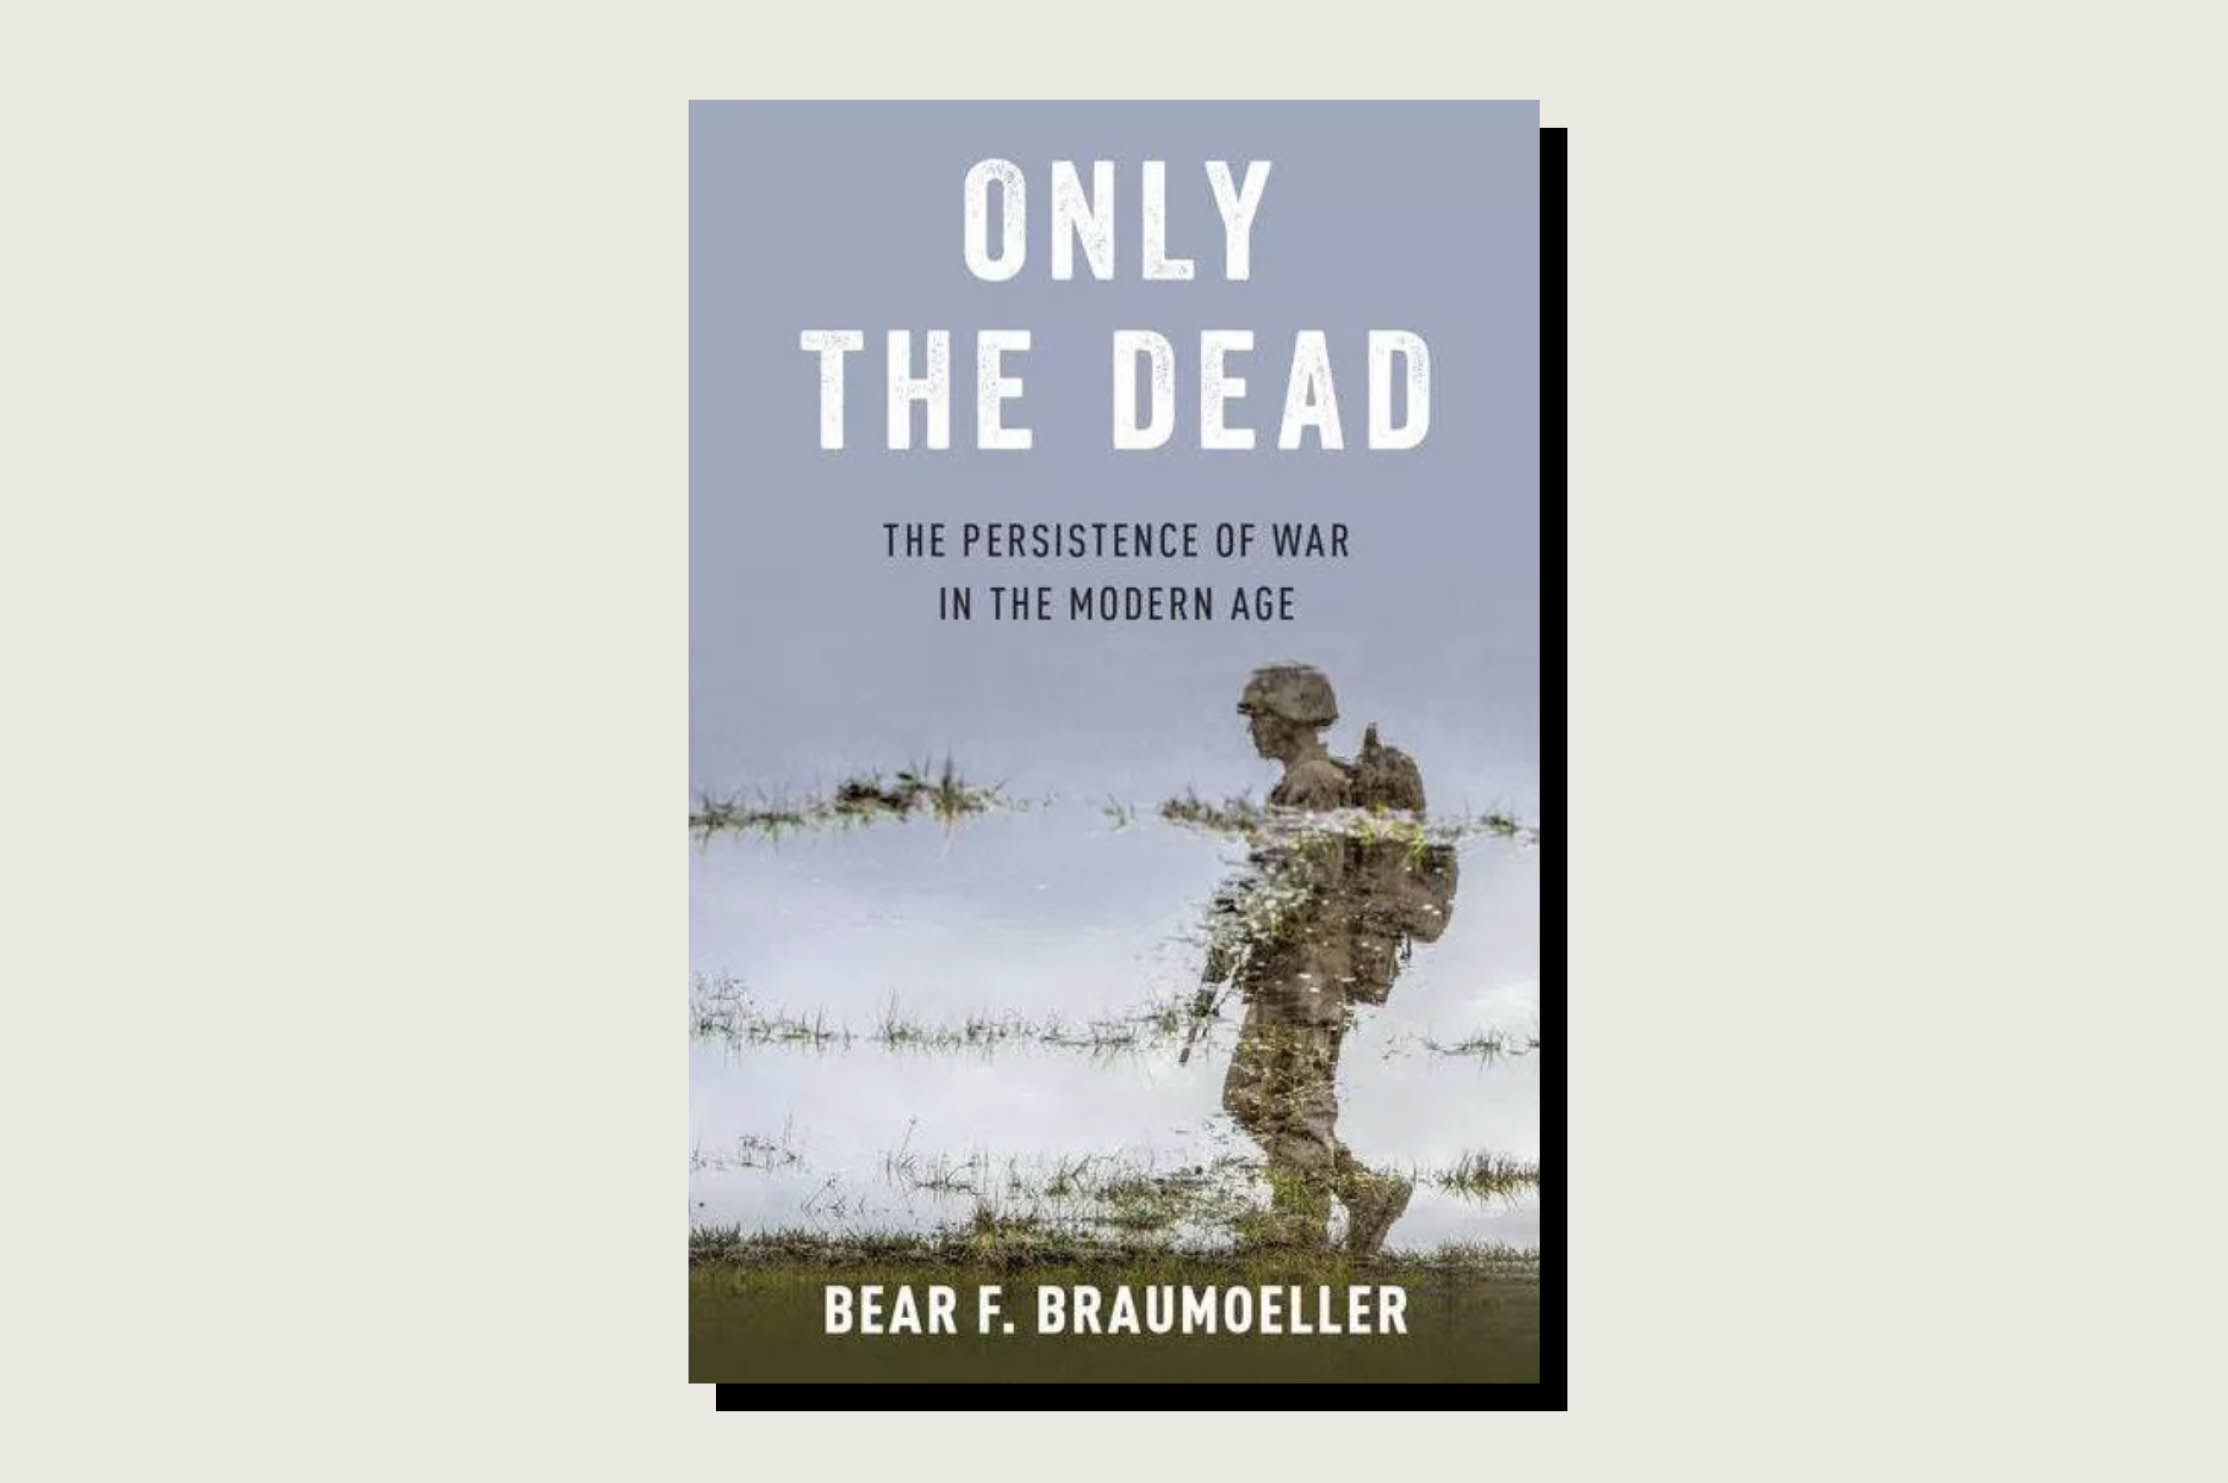 Only the Dead: The Persistence of War in the Modern Age, Bear F. Braumoeller, Oxford University Press, 344 pp., .95, Sept. 3, 2019